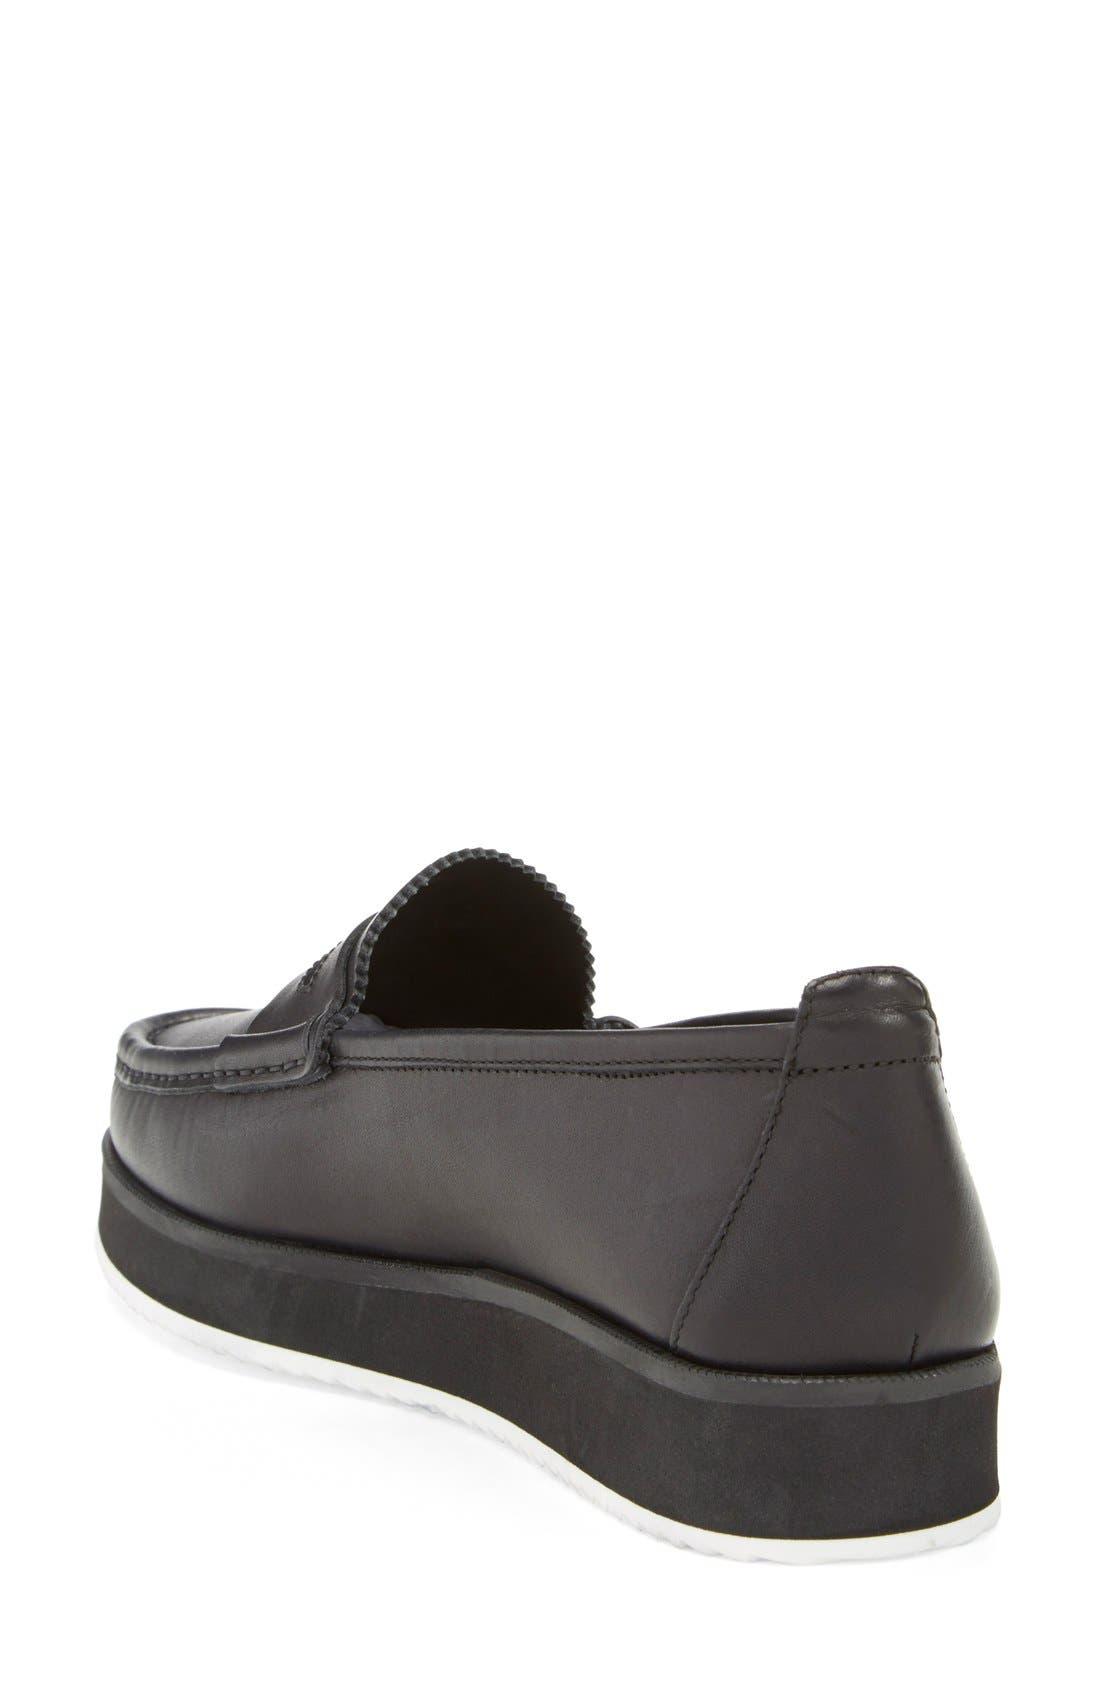 'Tanya' Penny Loafer,                             Alternate thumbnail 4, color,                             001